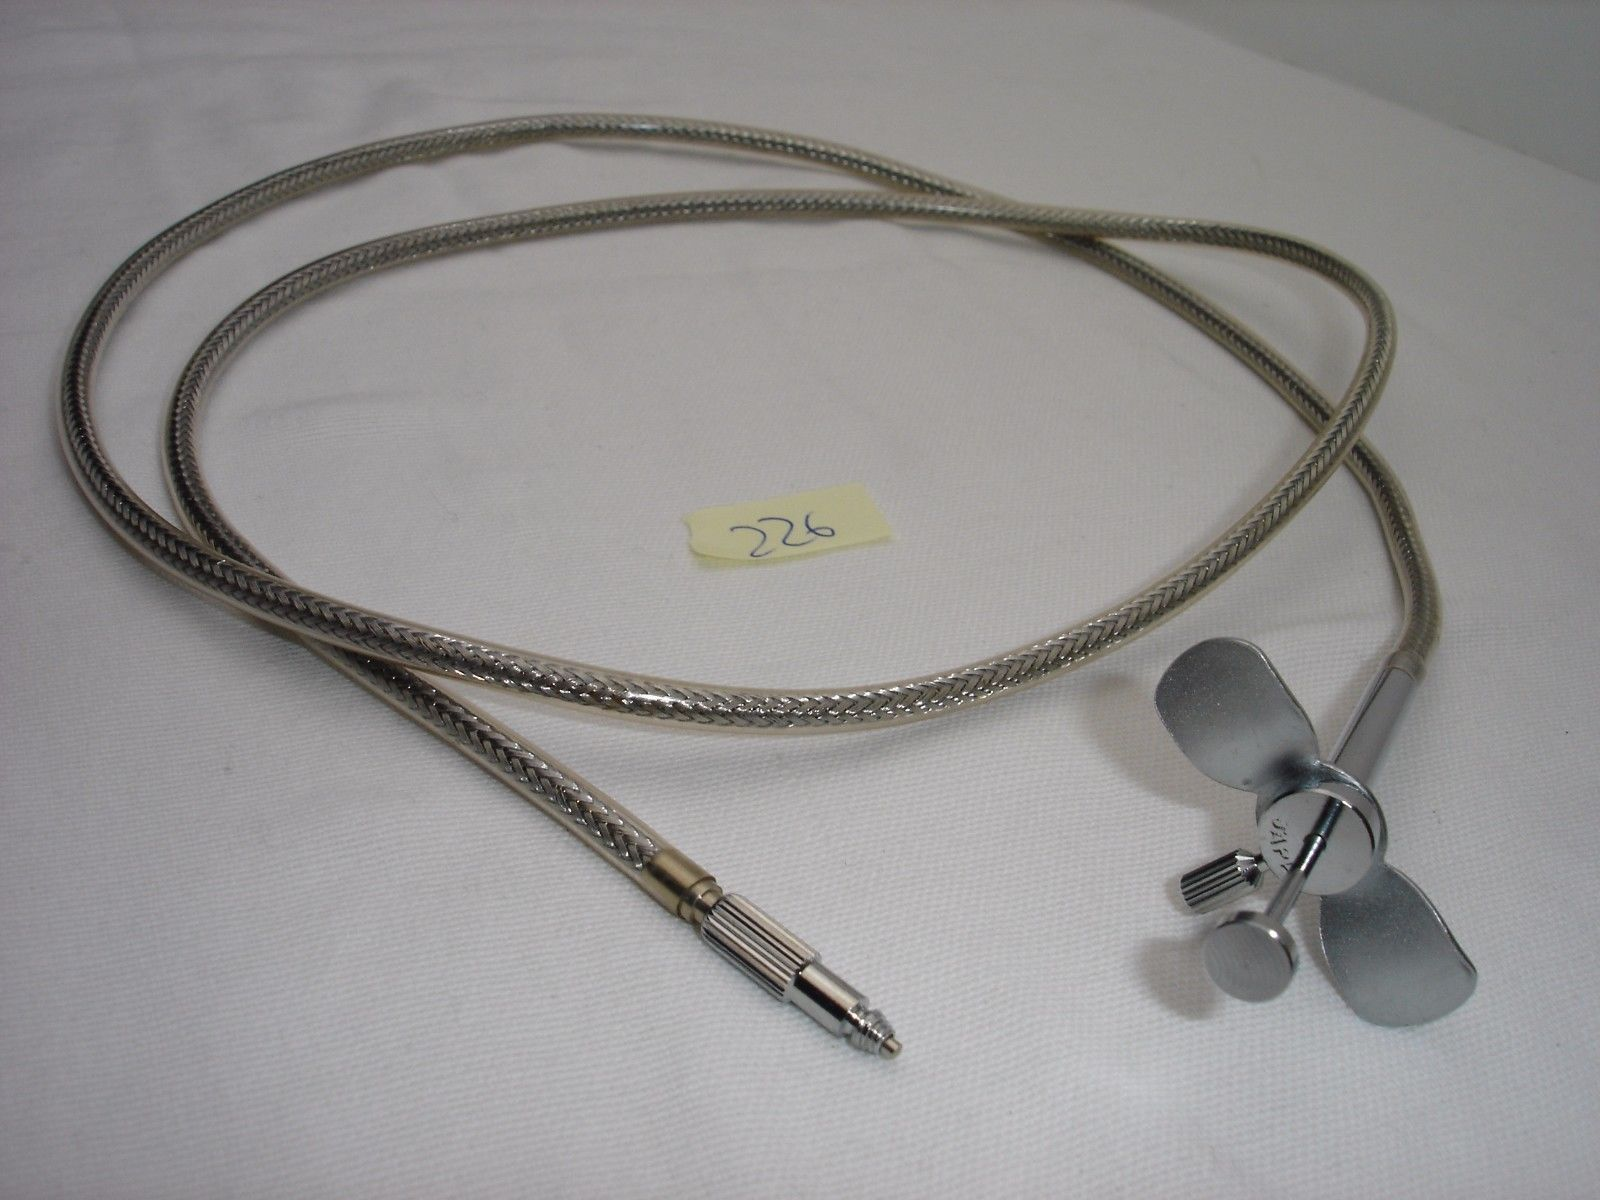 """38"""" long vintage shutter release cable w. T-lock (made in Japan)"""